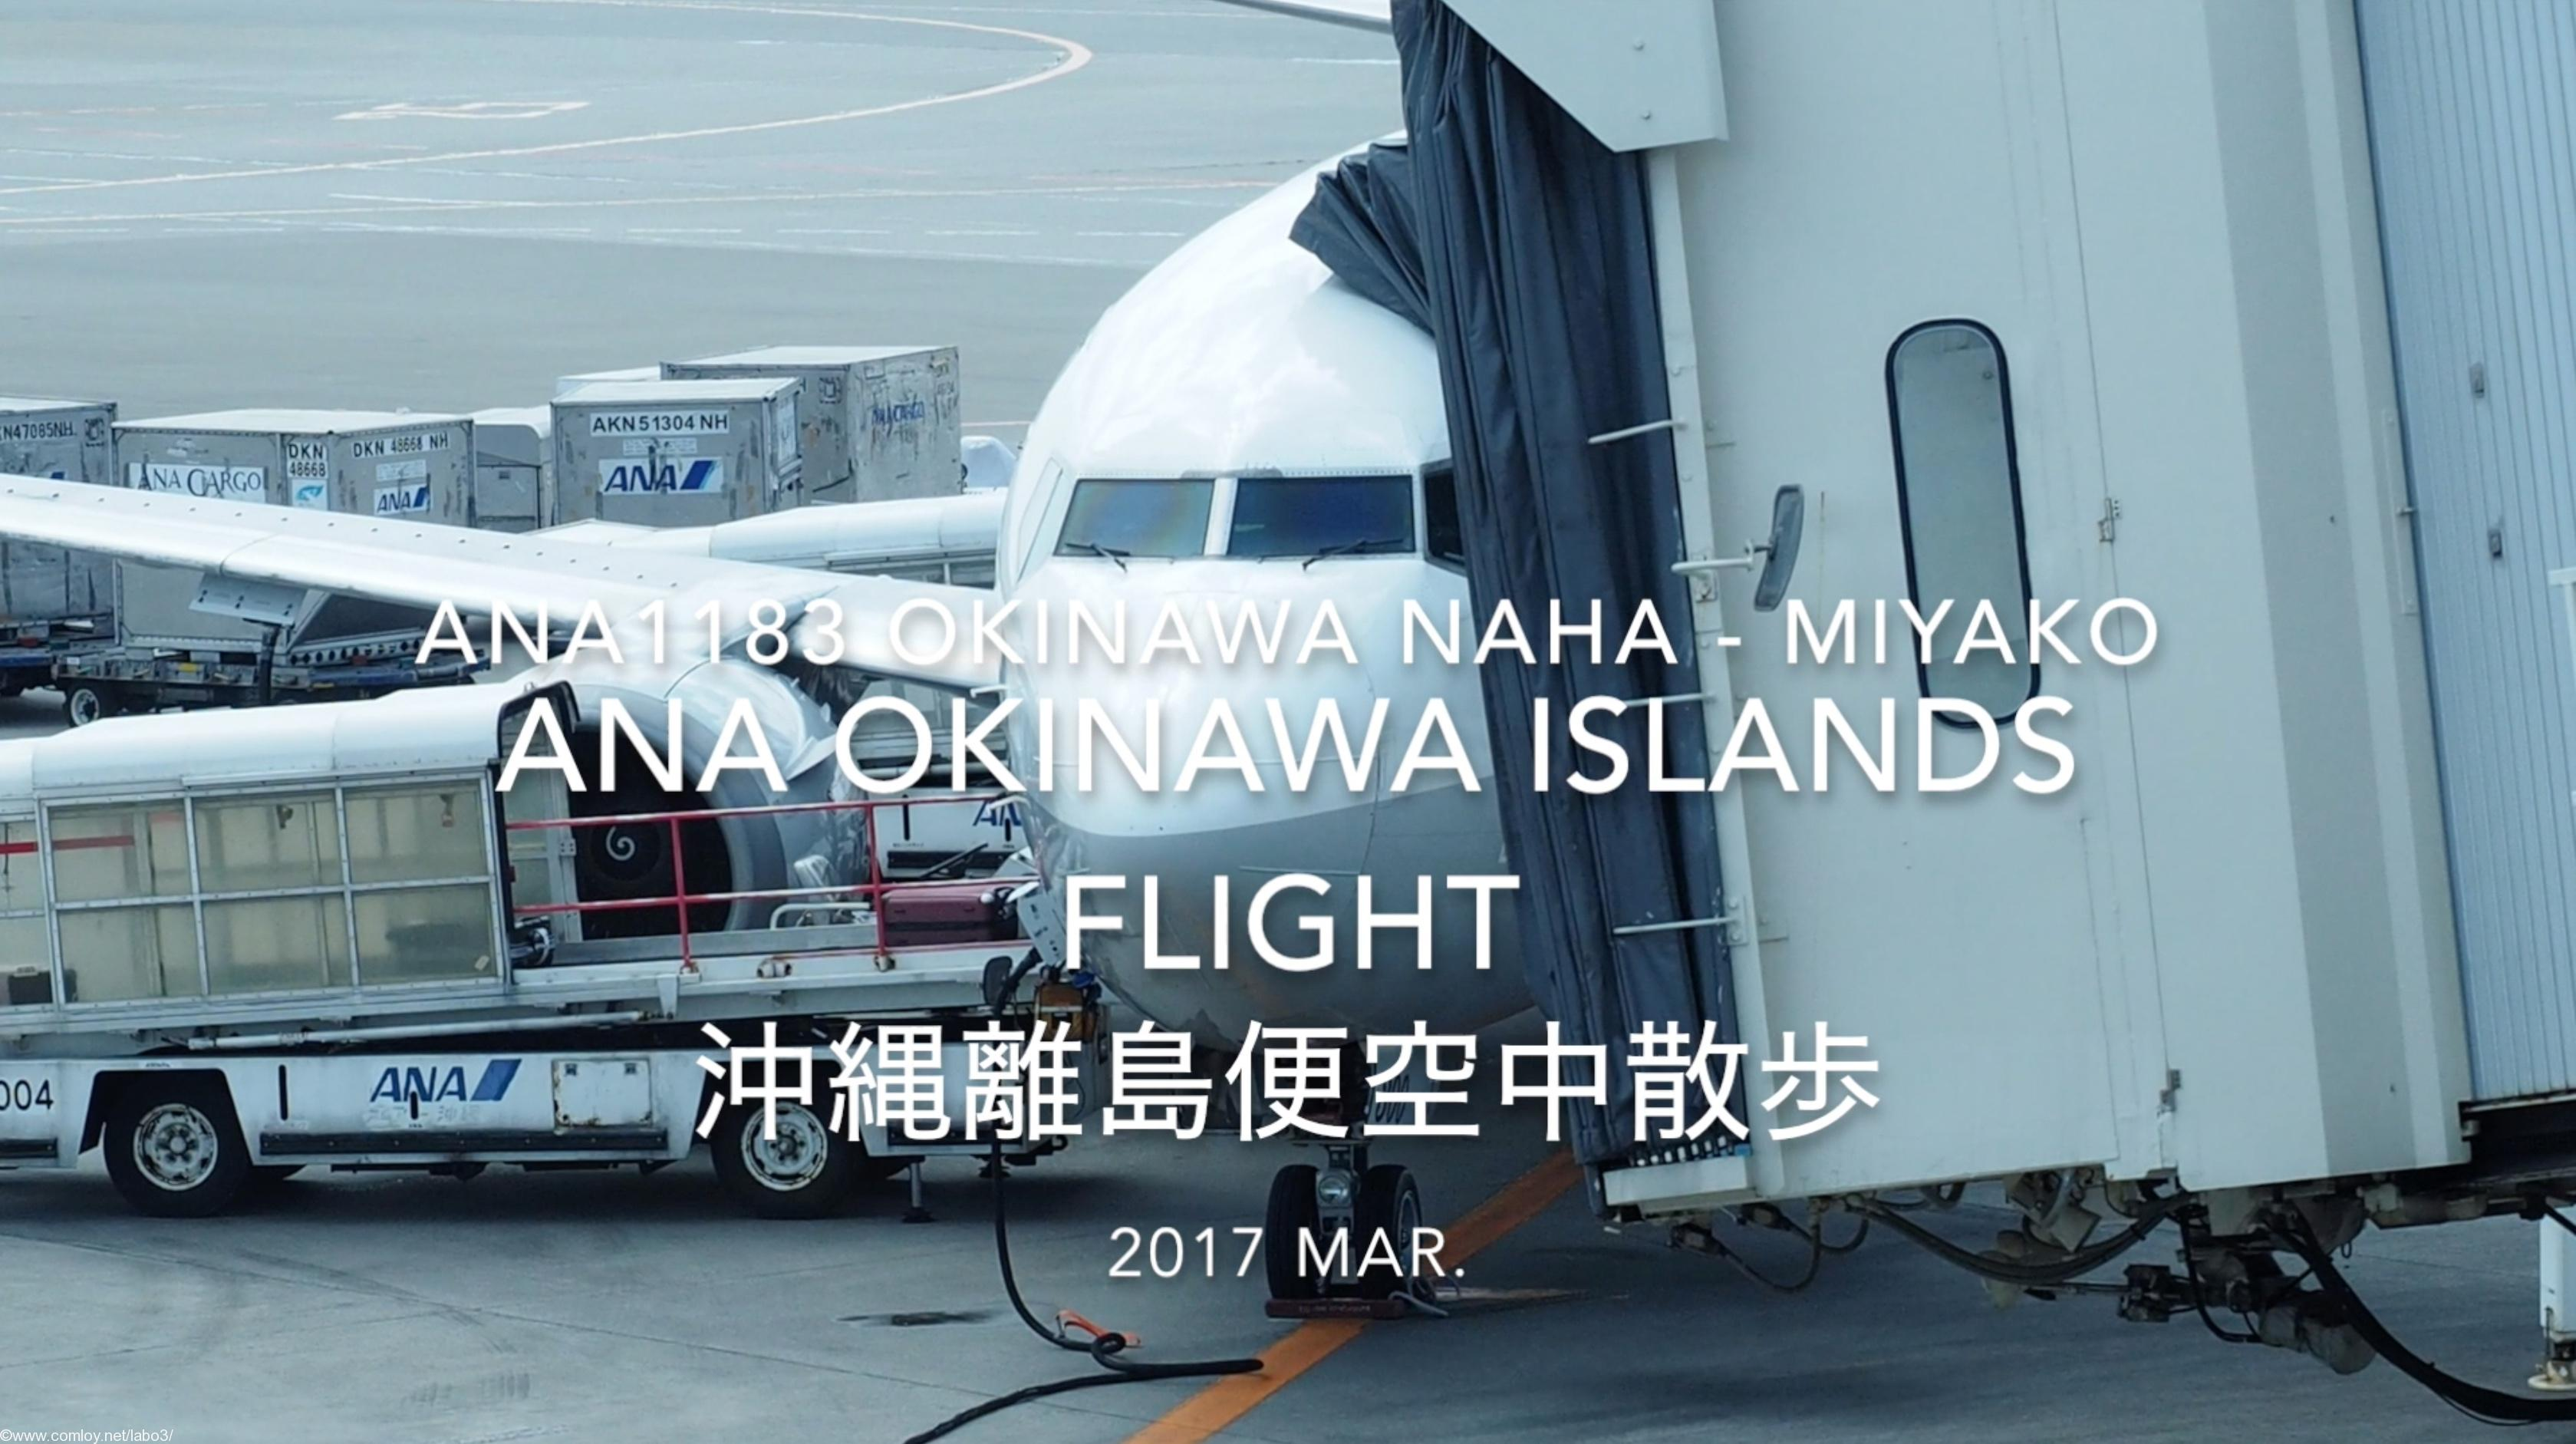 【Flight Report】 ANA1183 OKINAWA NAHA - MIYAKO 2017・3 離島便空中散歩